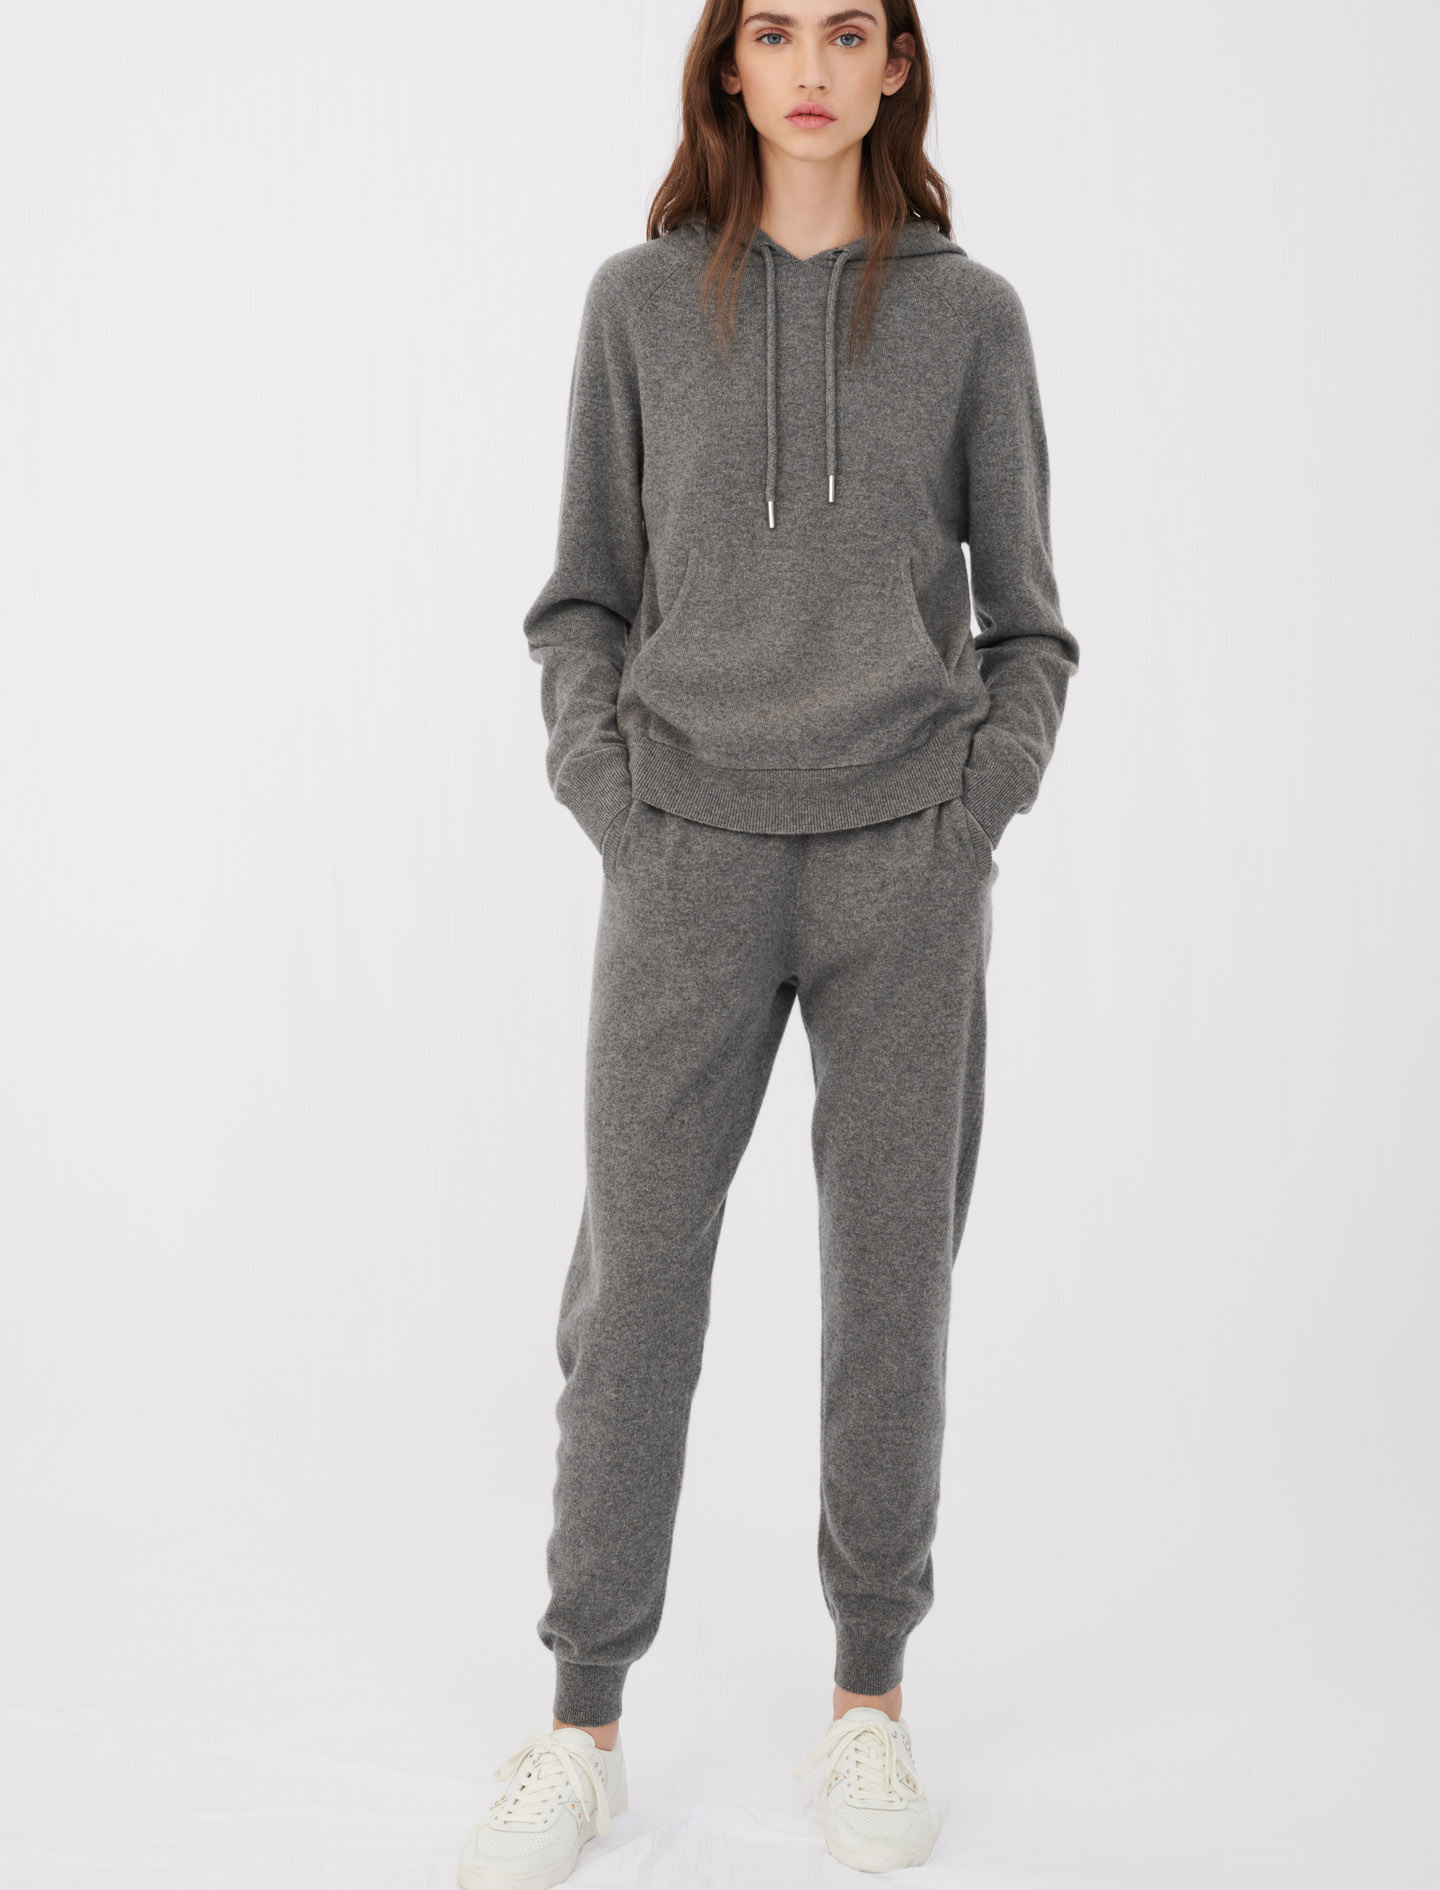 Cashmere jogger-style trousers grey in maje paris